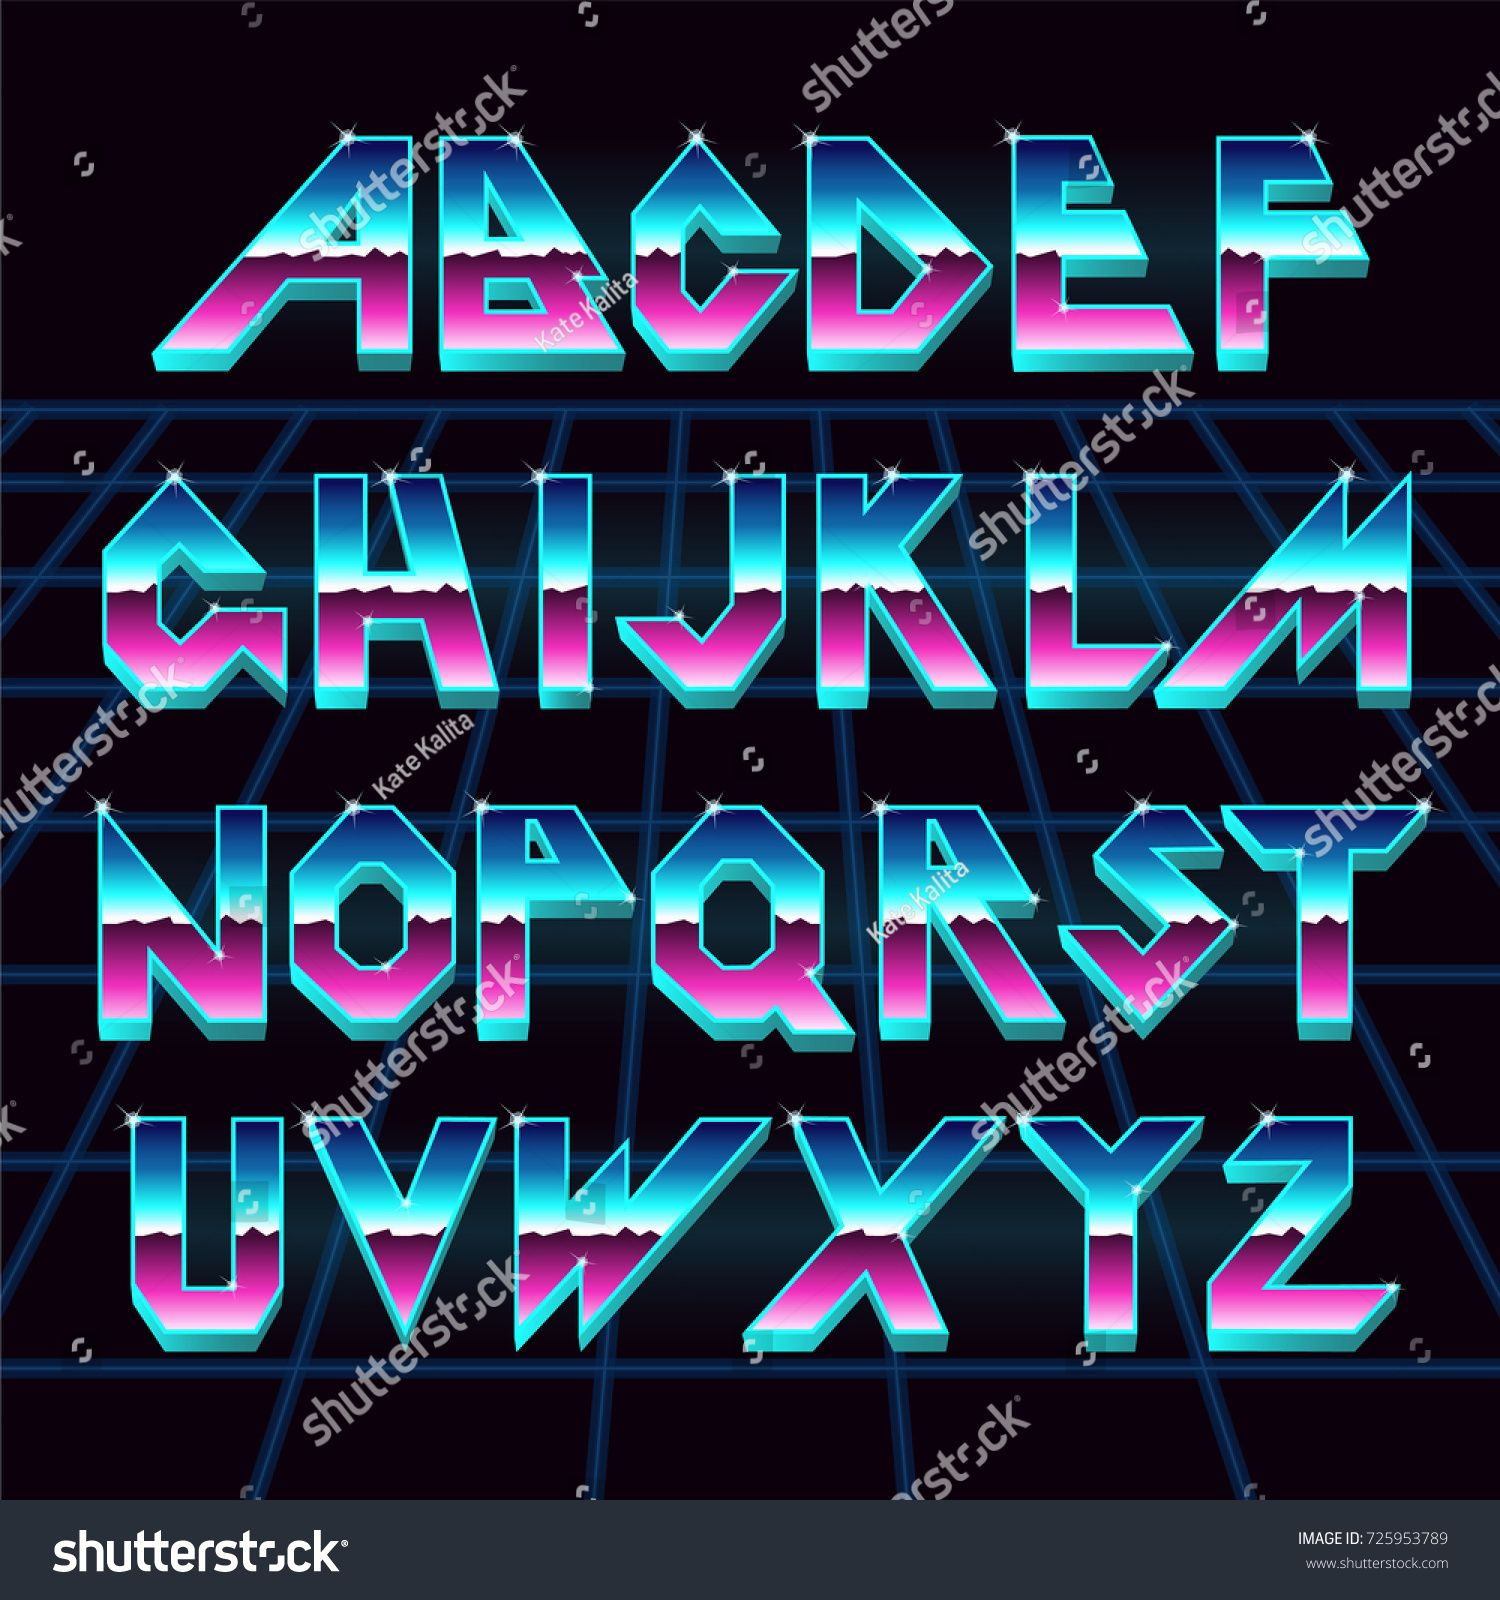 Alphabet 80s Retro FontVector Typography For Flyersheadlines PostersEffect Shiny Letters Neon Stylevintage Dance NightRetro Futurism Sci Fi Font